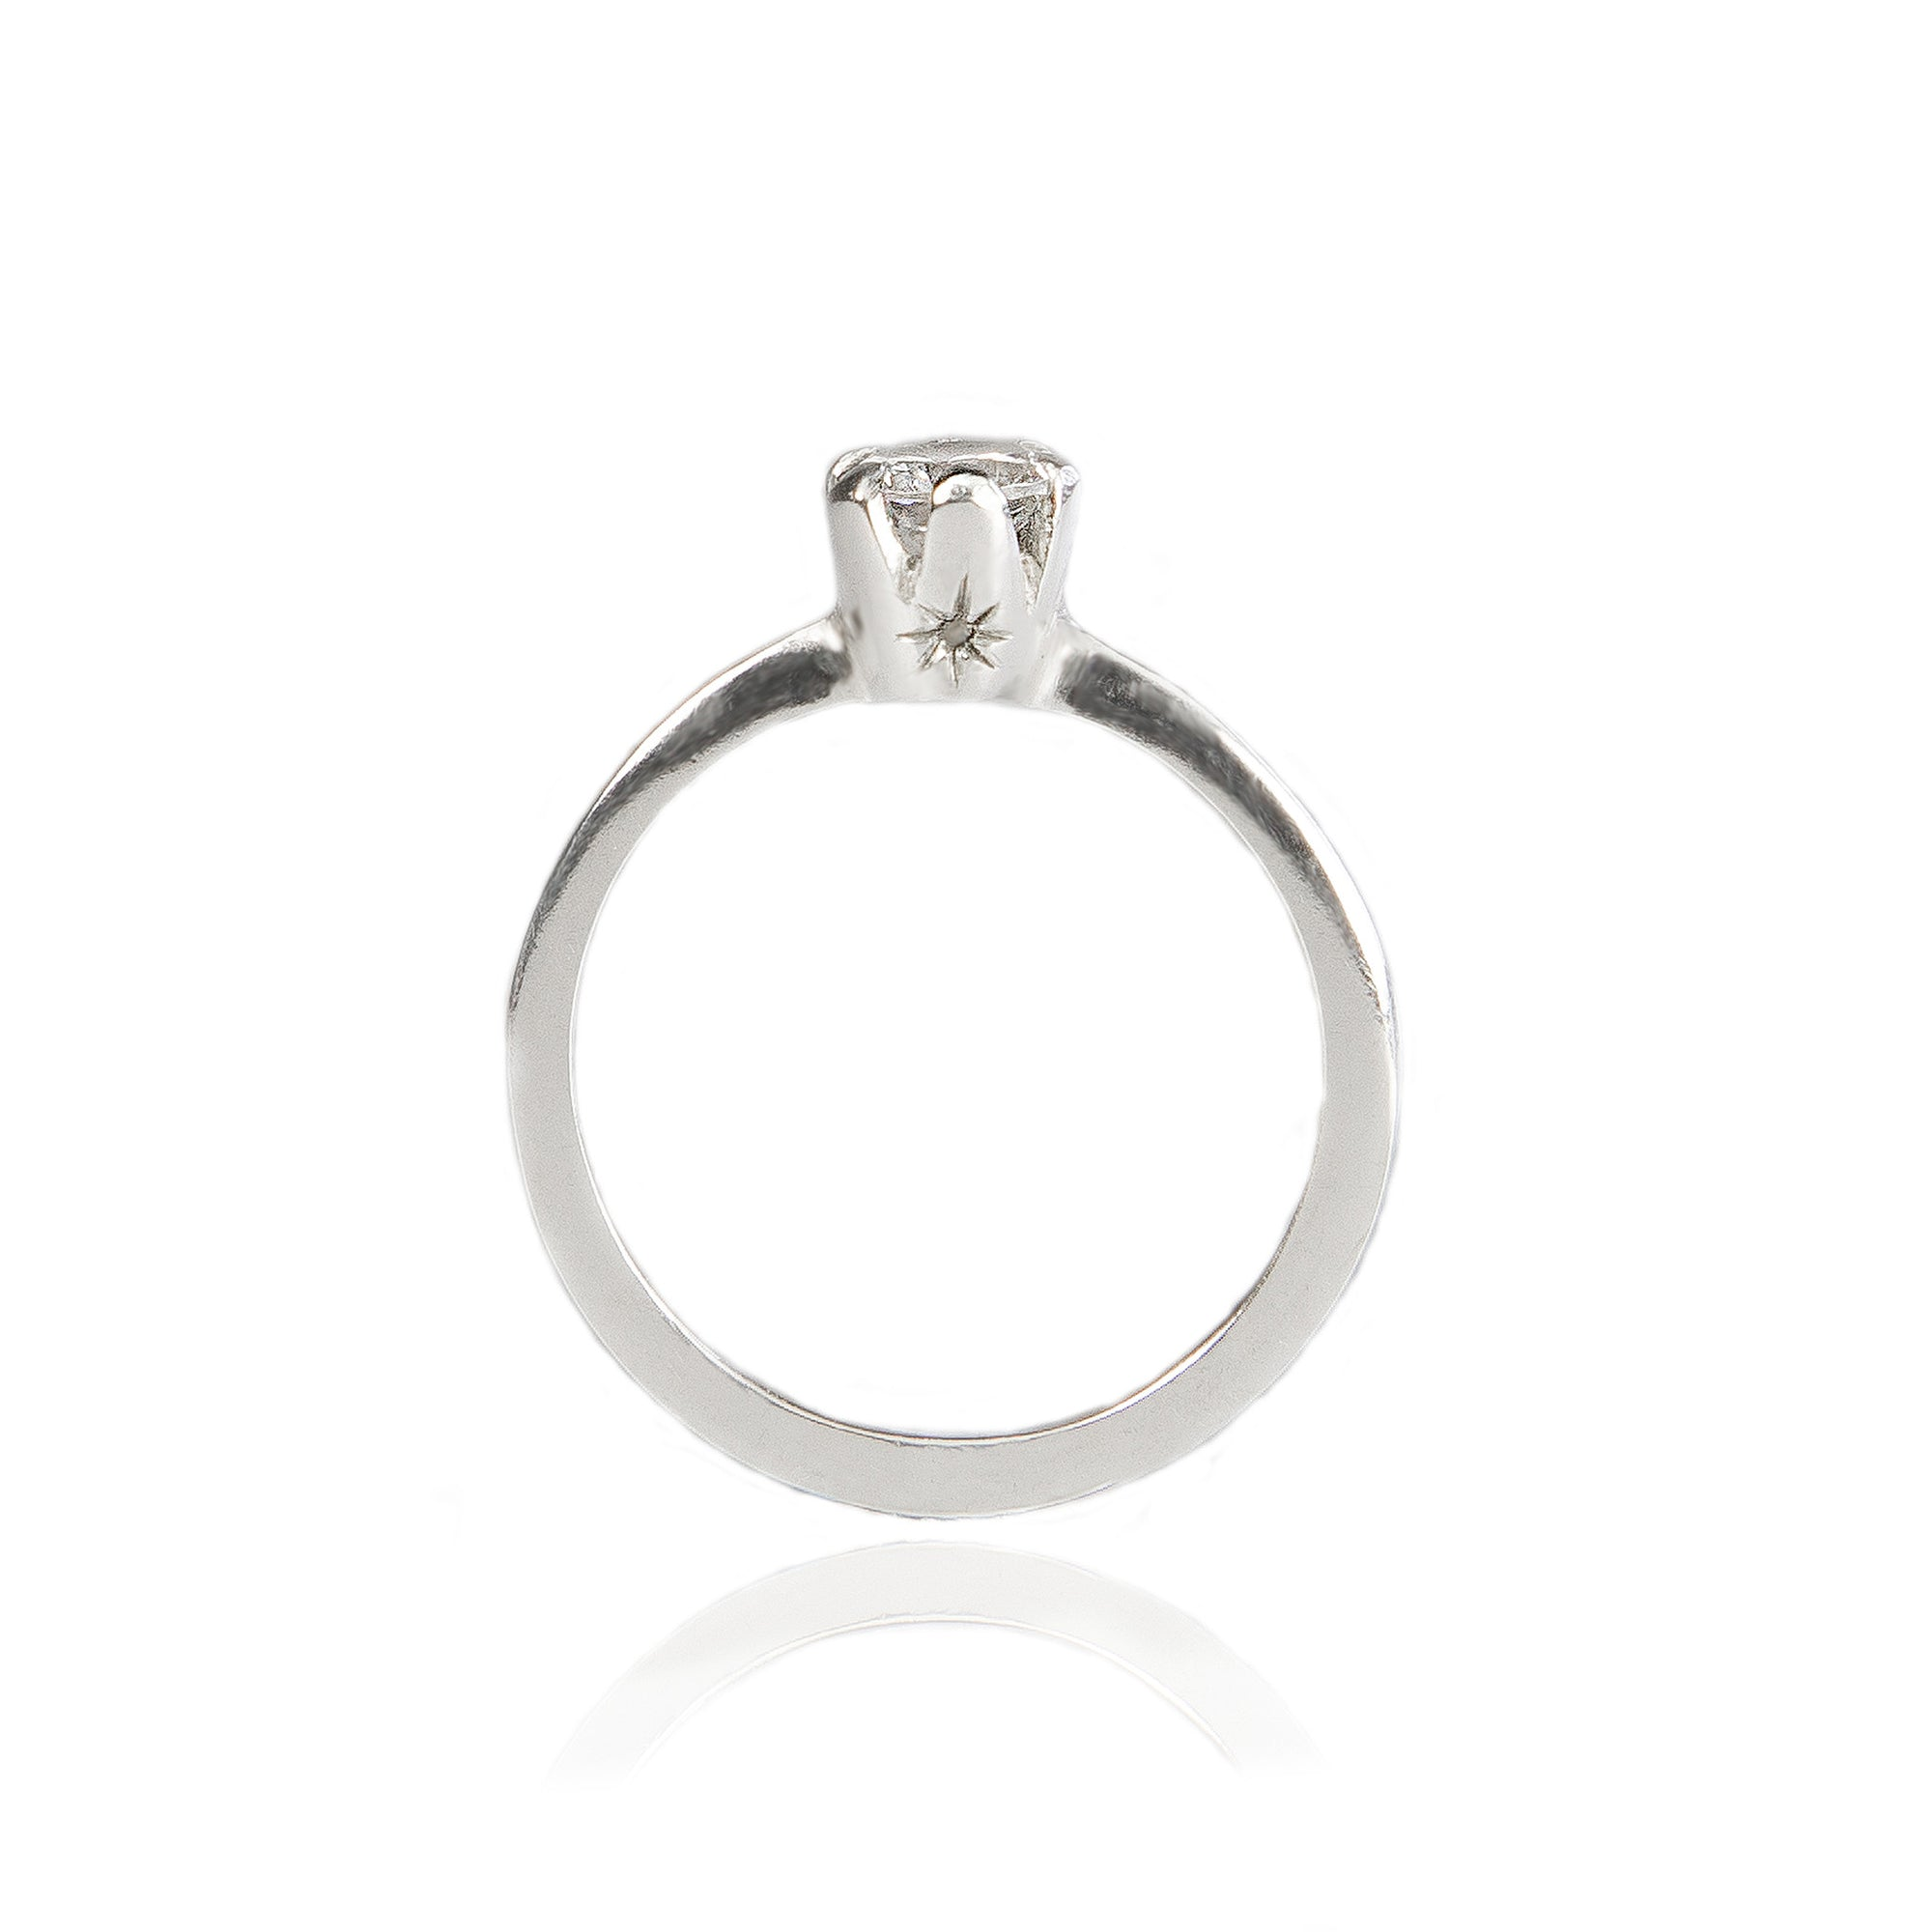 Marie Ethical Engagement ring